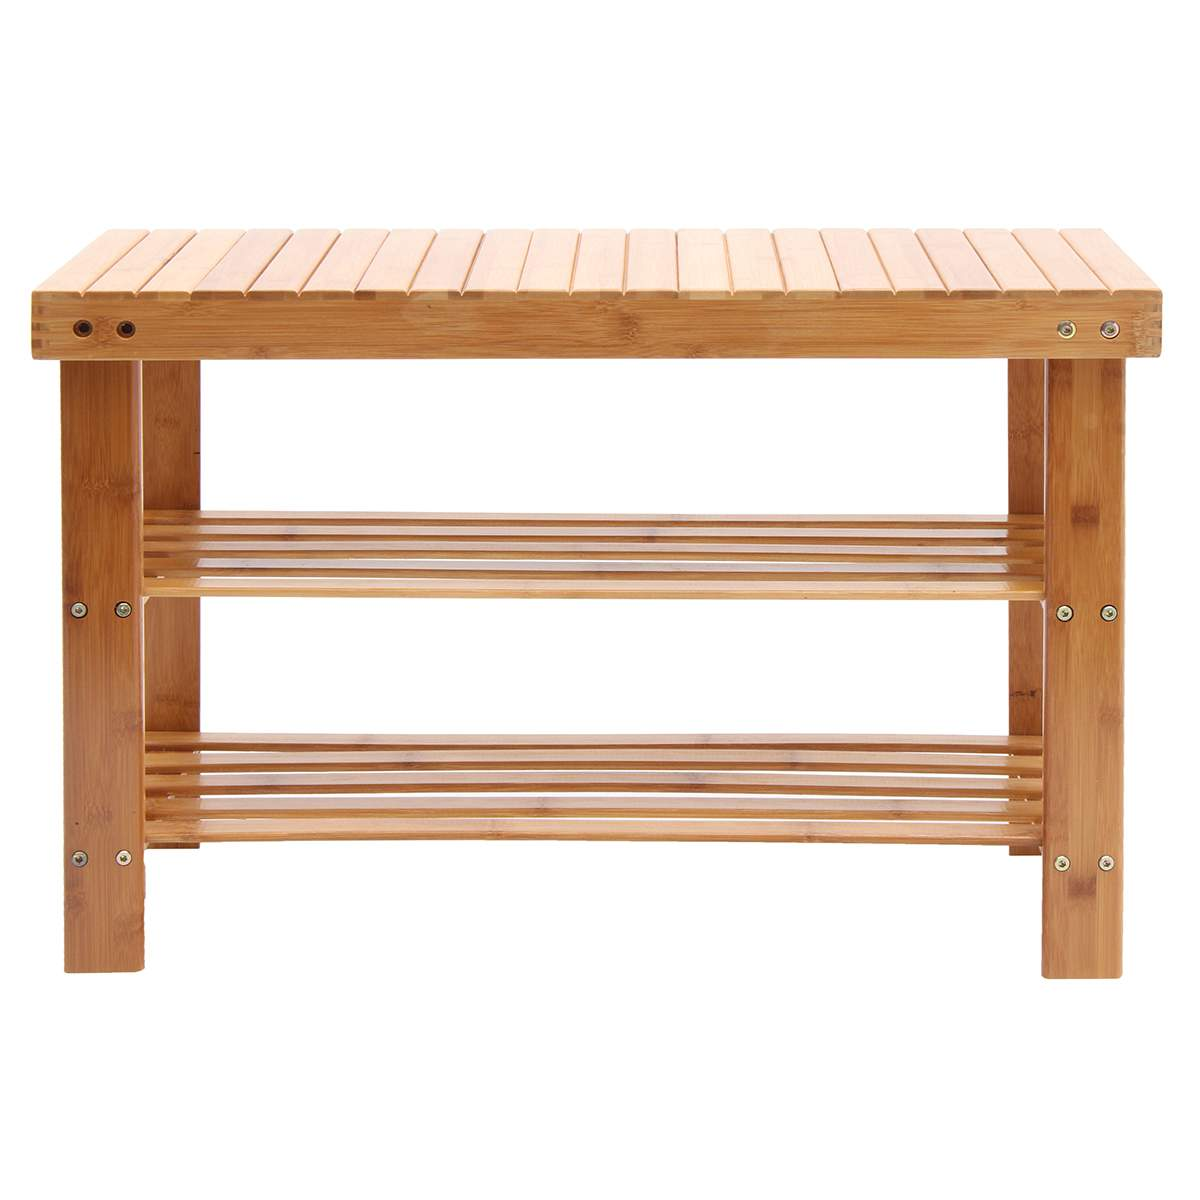 Bamboo Shoe Organizer Rack Simple Modern Change Shoes Bench Entryway Storage Shoes Cabinet Multi-functional Nordic Wooden title=